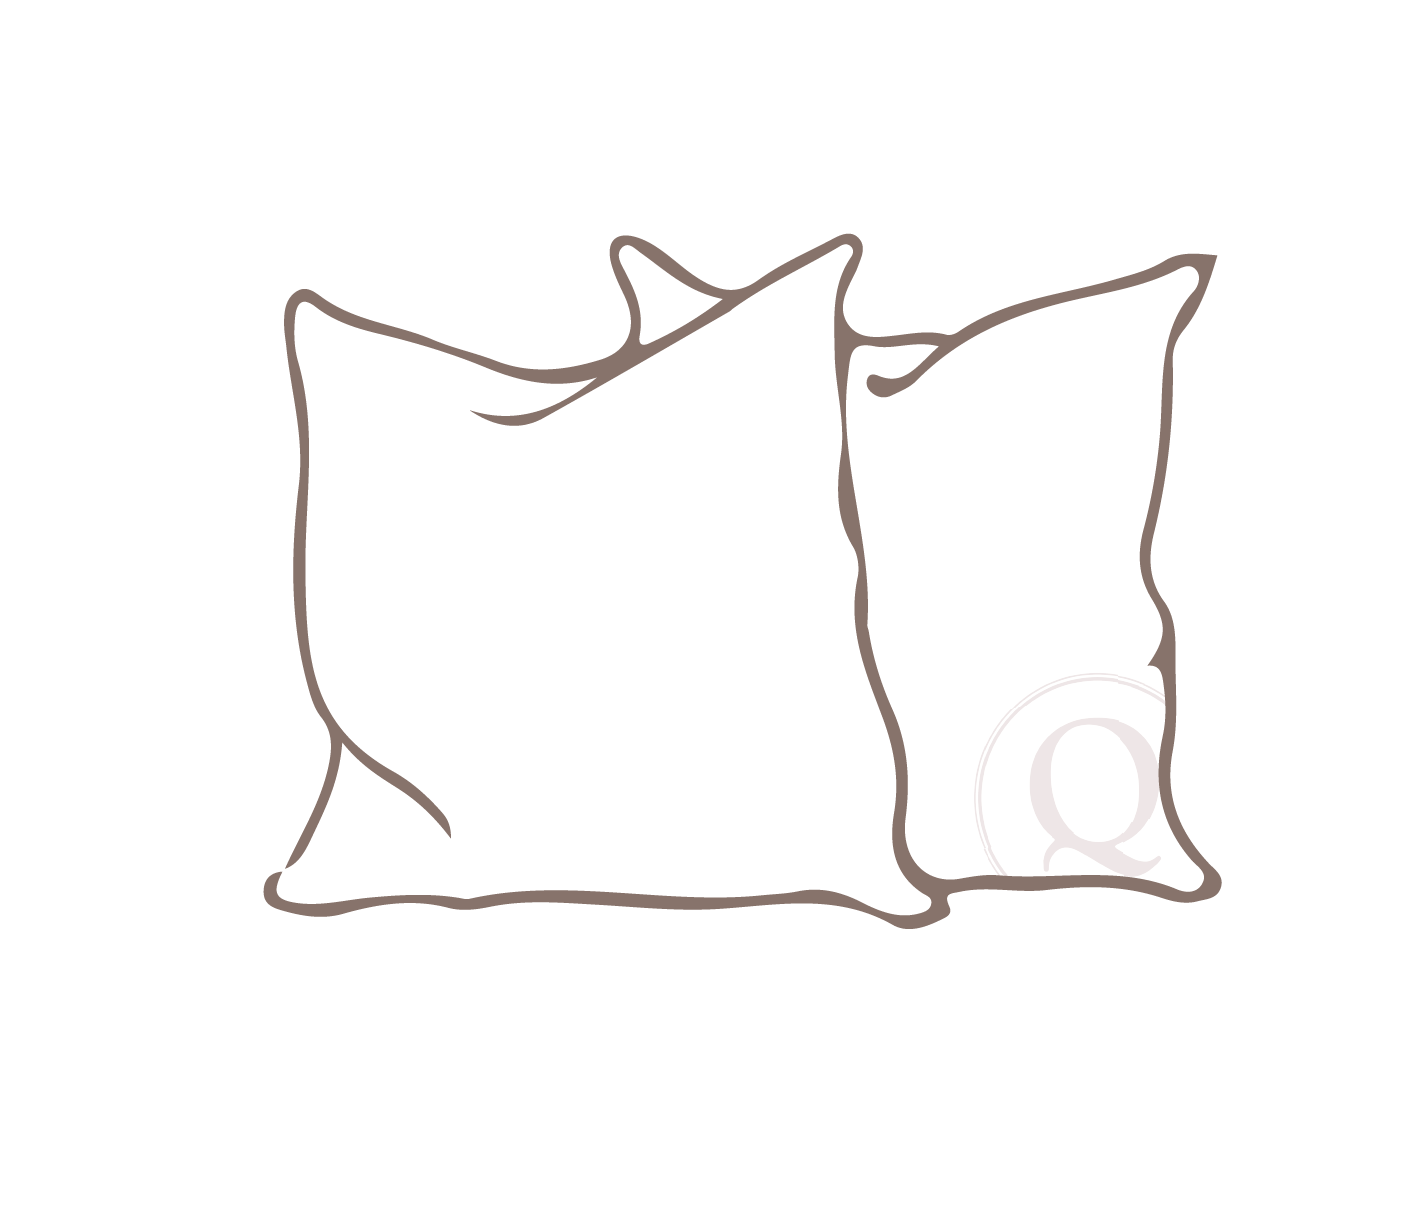 throw - Usually a smaller pillow for decorative use, these pillows can be made in various sizes and shapes. Finished with clean edges and plush inserts, when used correctly they can make a design connection between furniture and the rest of a room.